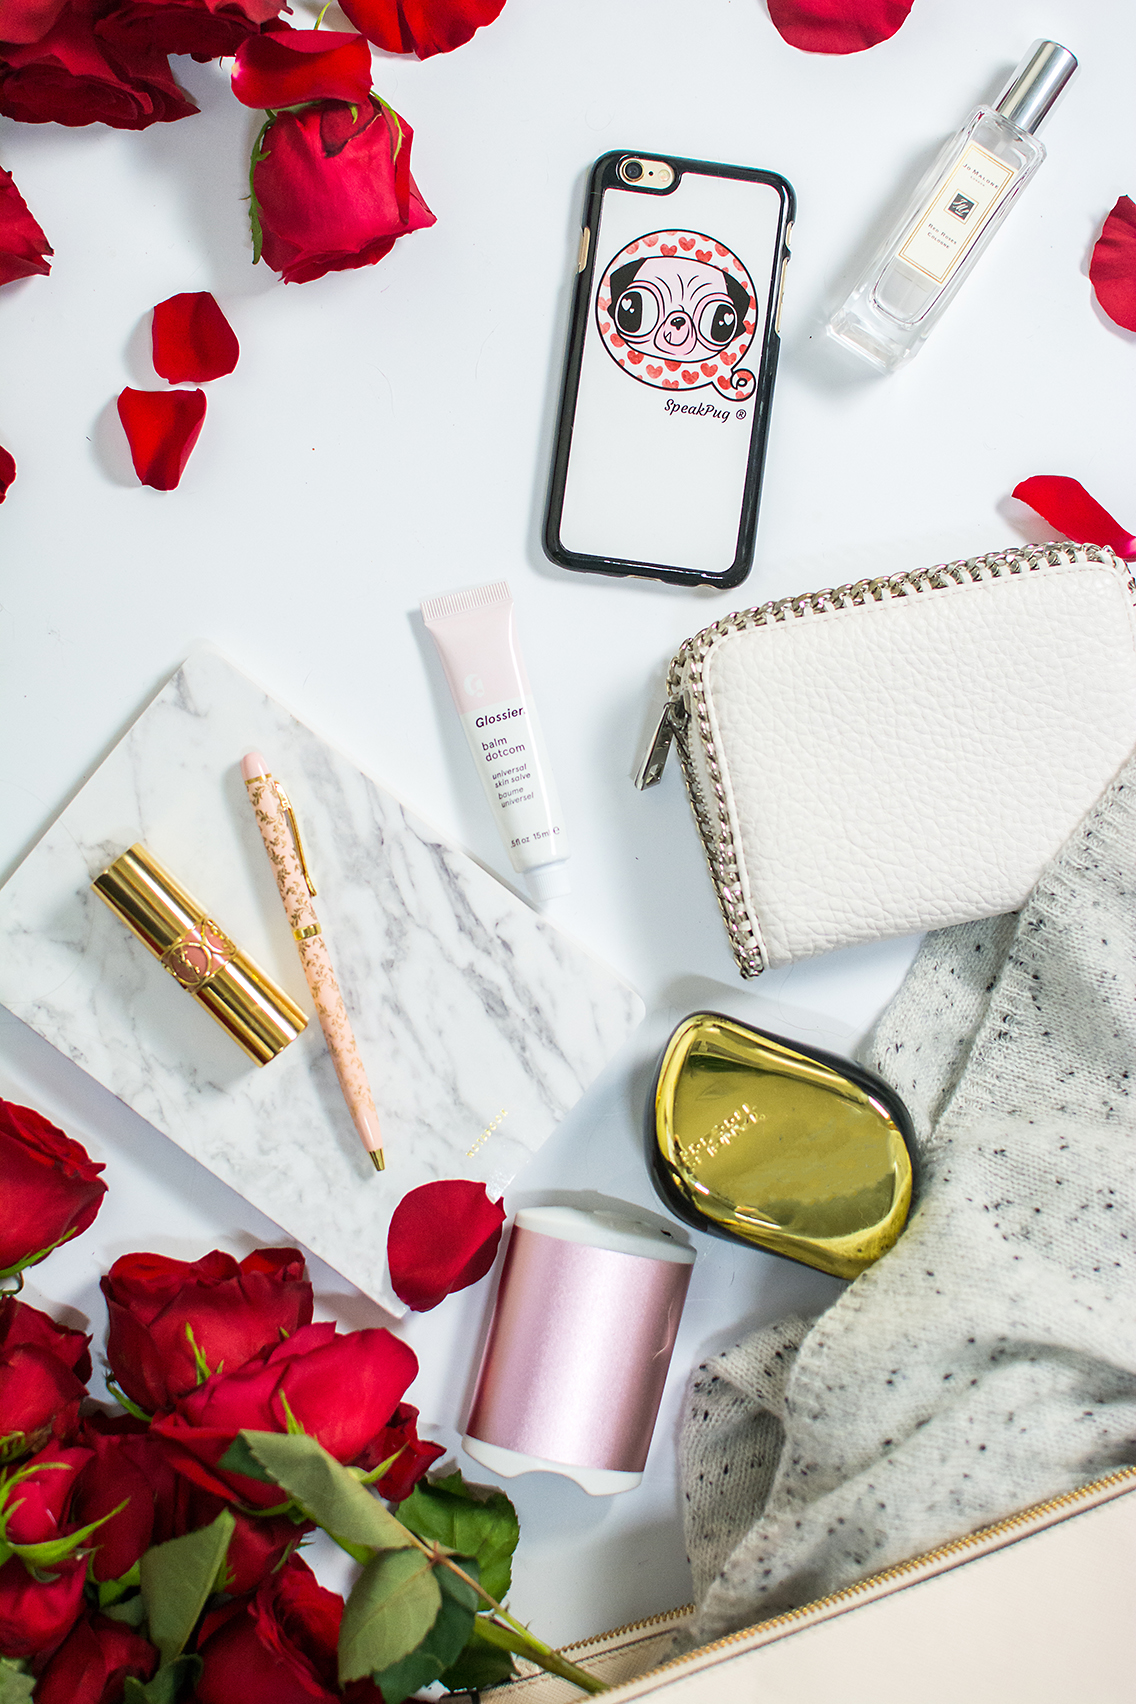 H&M Tote Jo Malone Red Roses Glossier Balm YSL Lips 1